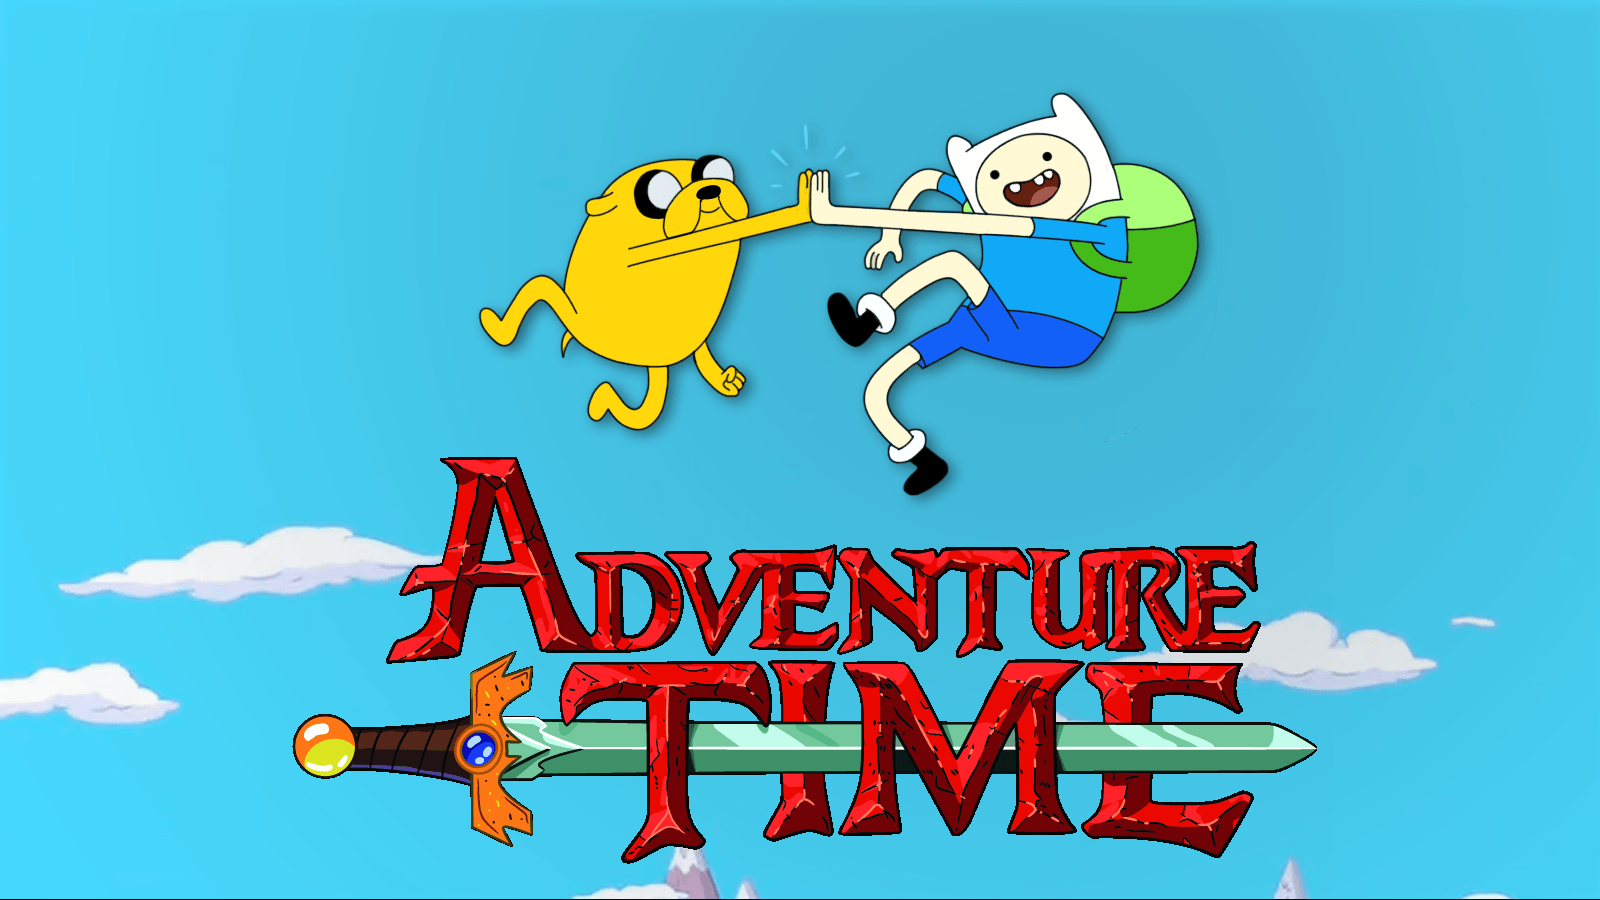 Download Adventure Time Wallpaper 1600x900 | HD Wallpapers - #538339